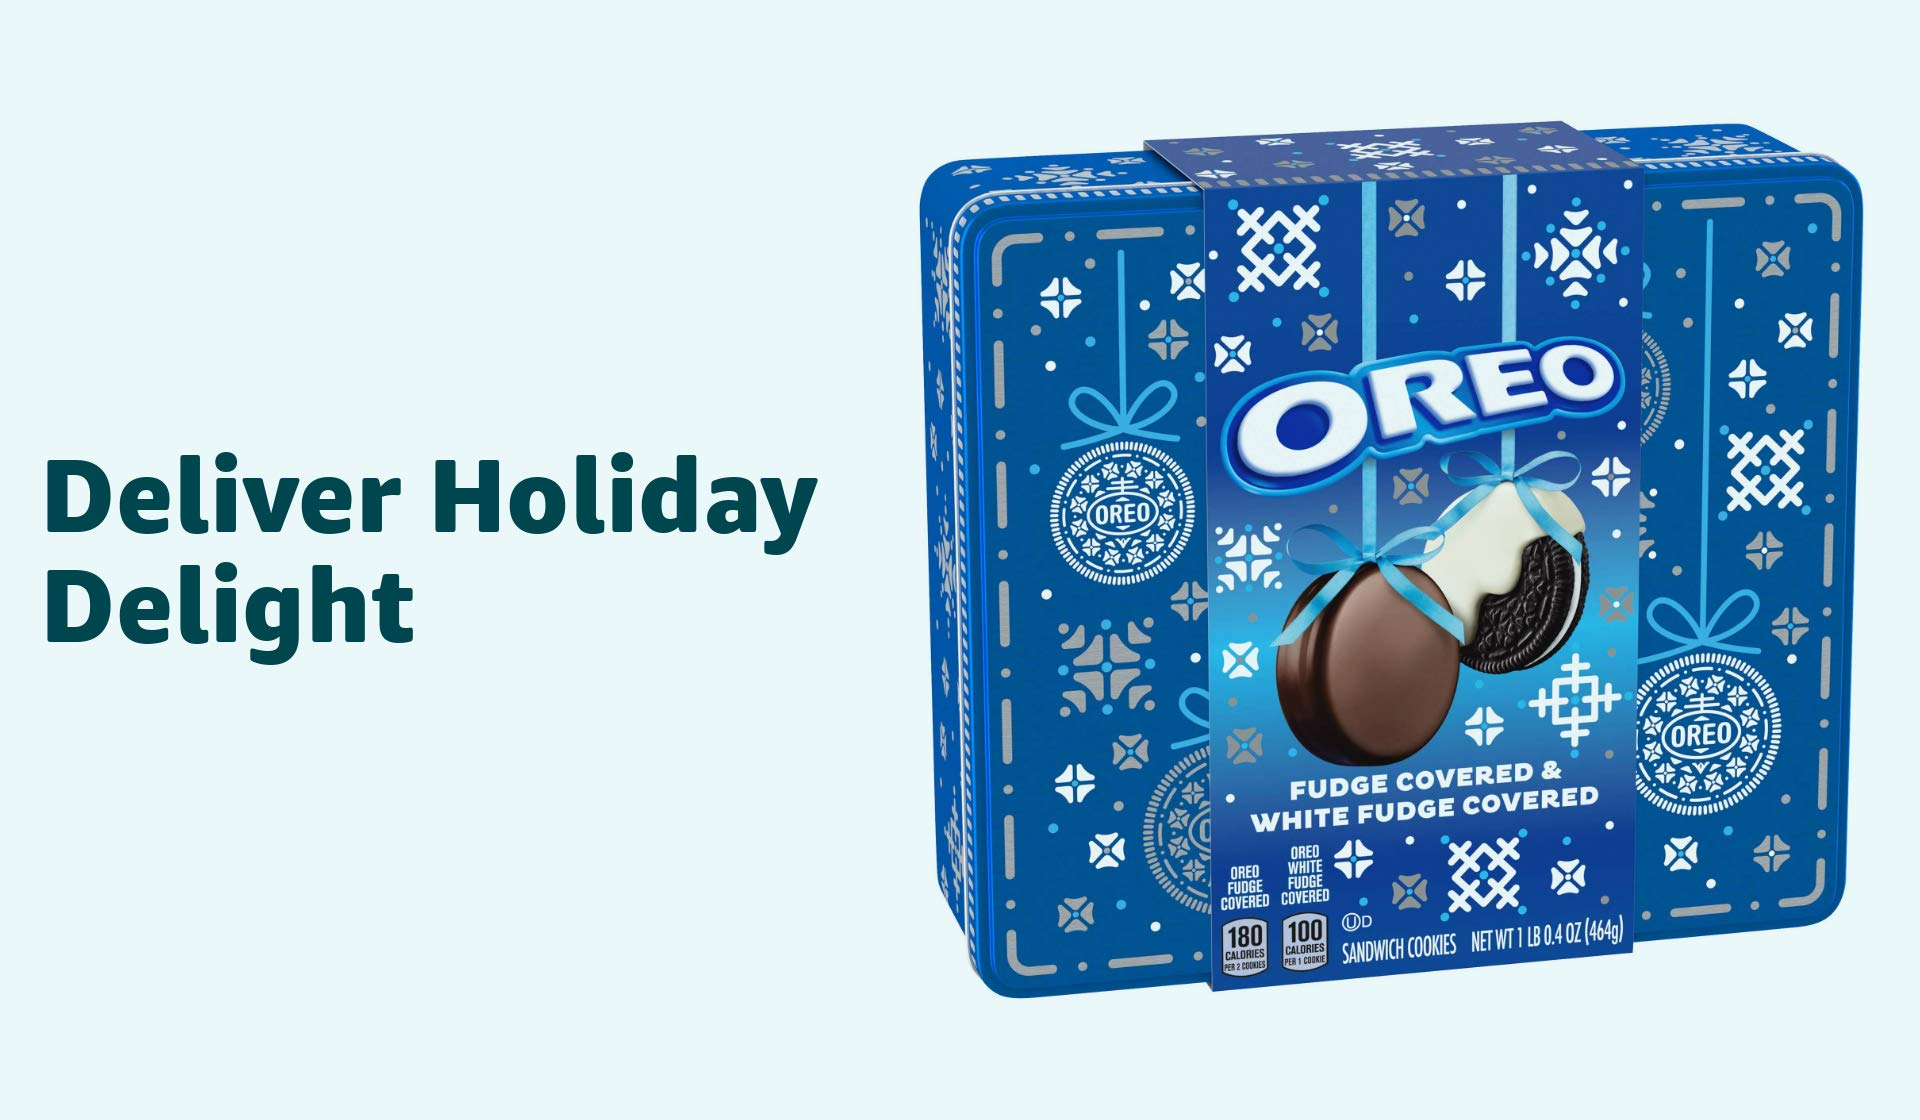 Deliver Holiday Delight